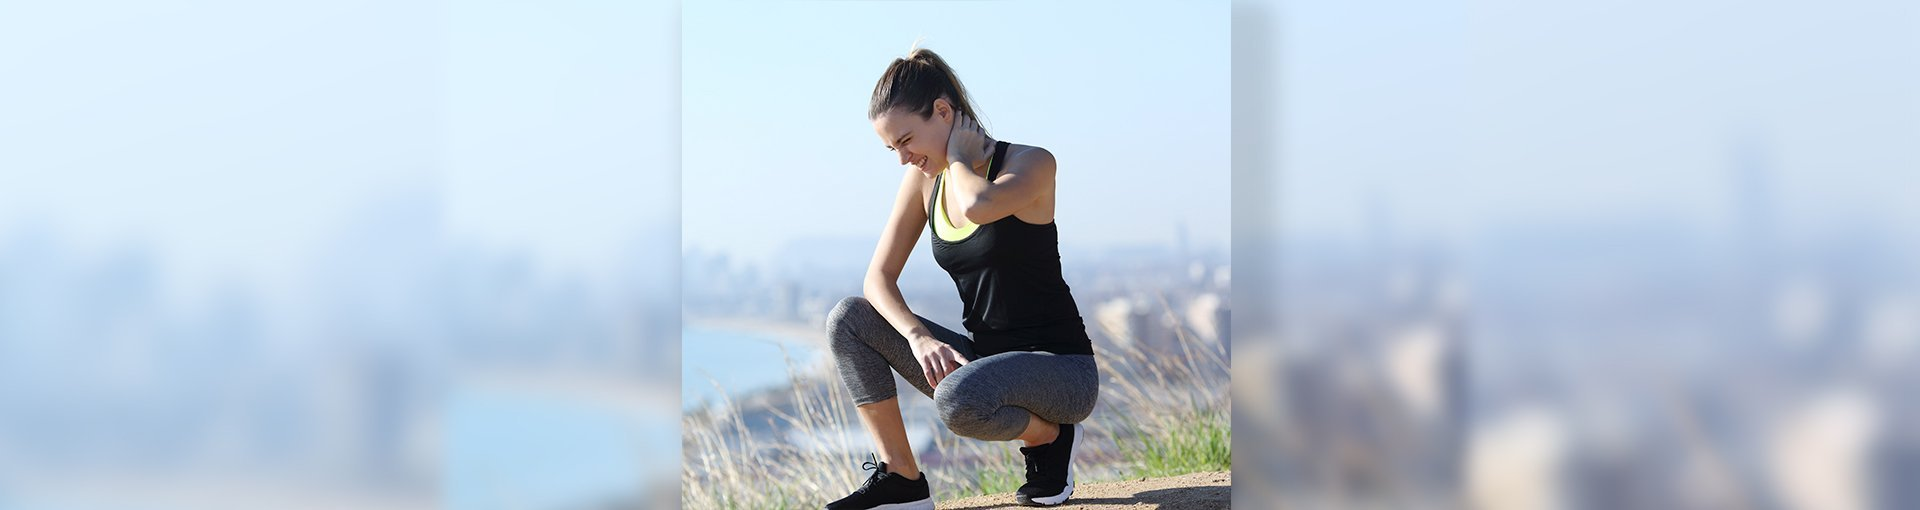 How To Avoid Neck & Shoulder Pain After Running?